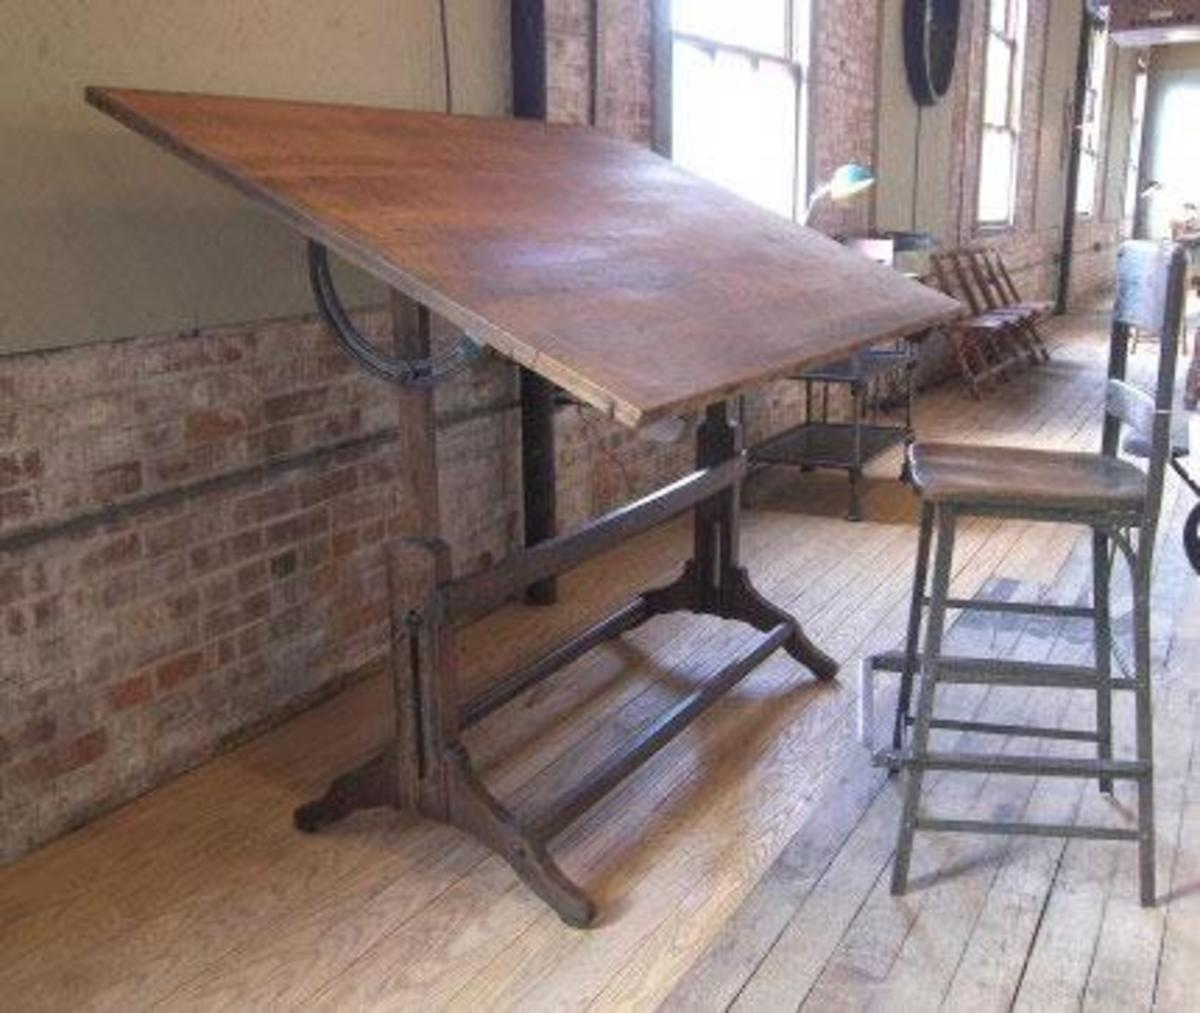 This is a vintage antique industrial drafting desk. Perfect for writing or sketching purposes!